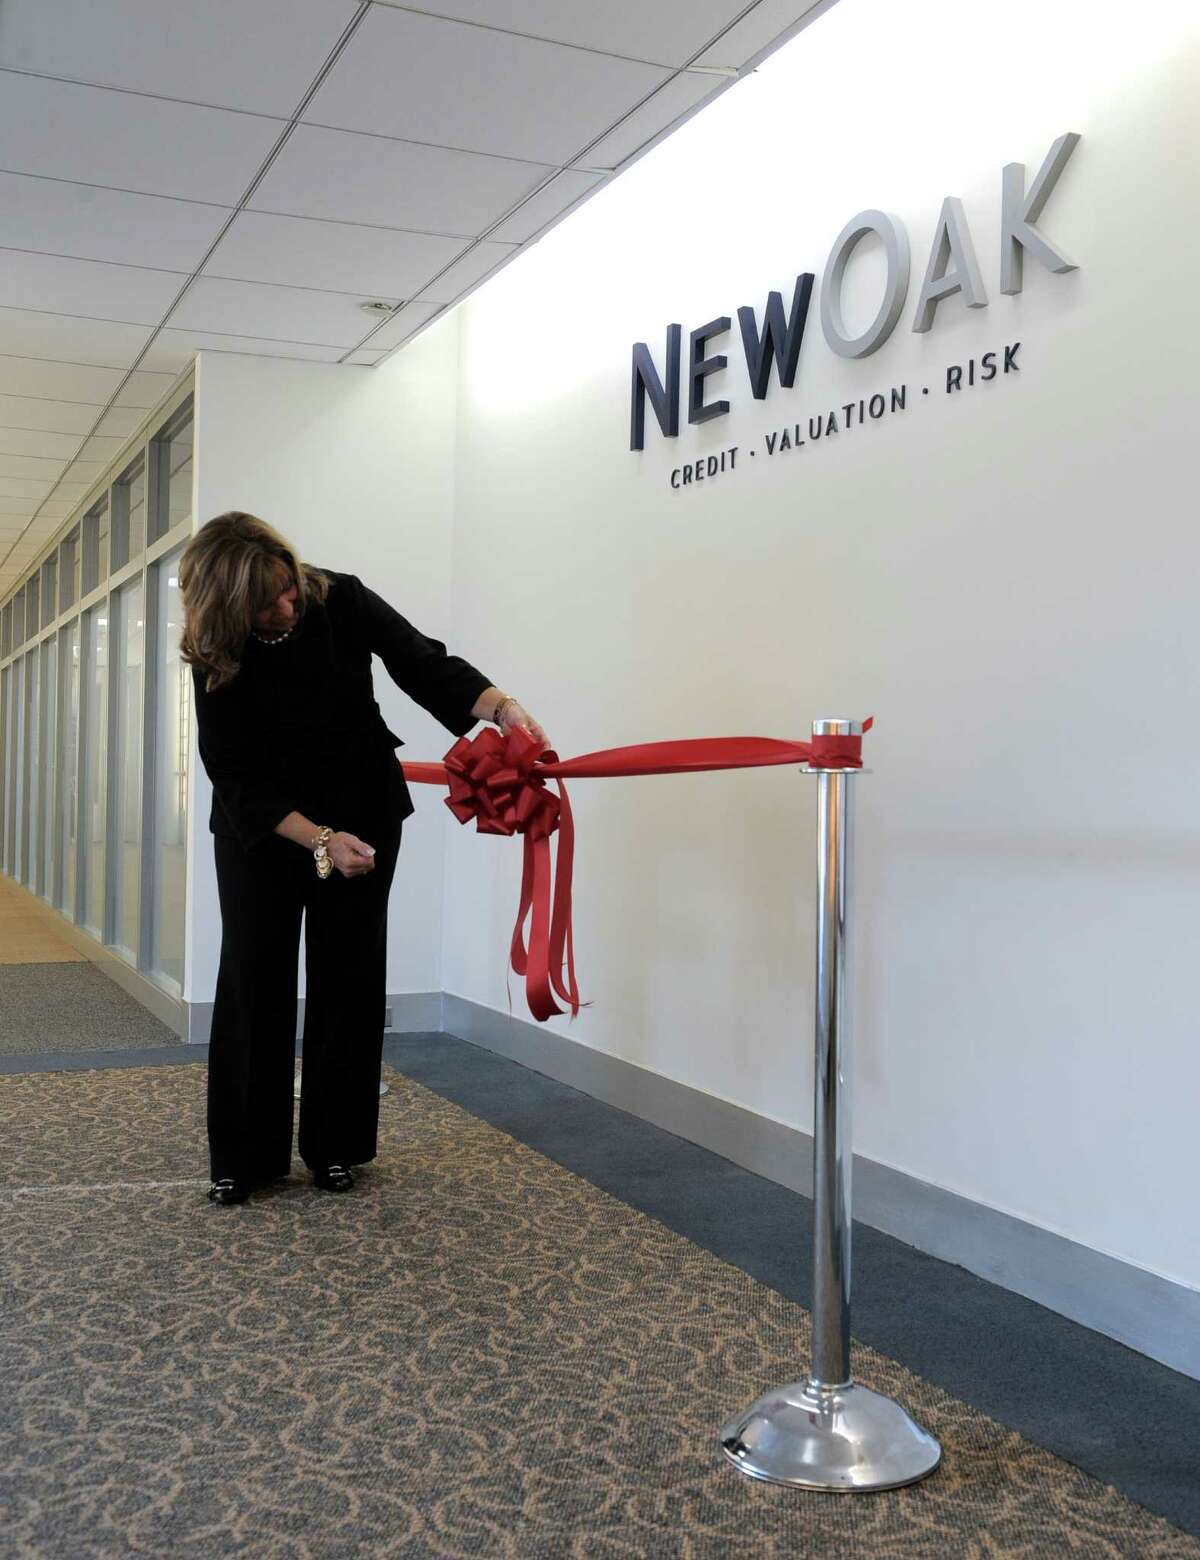 Diane Disher, a Sales Manager for the Matrix Corporate Center, arranges a ribbon under for the New York City based finance company NewOak, which held a reception and ribbon cutting for their new Danbury, Conn, office at the Matrix Corporate Center, in Danbury, Conn, on Thursday, October 16, 2014.